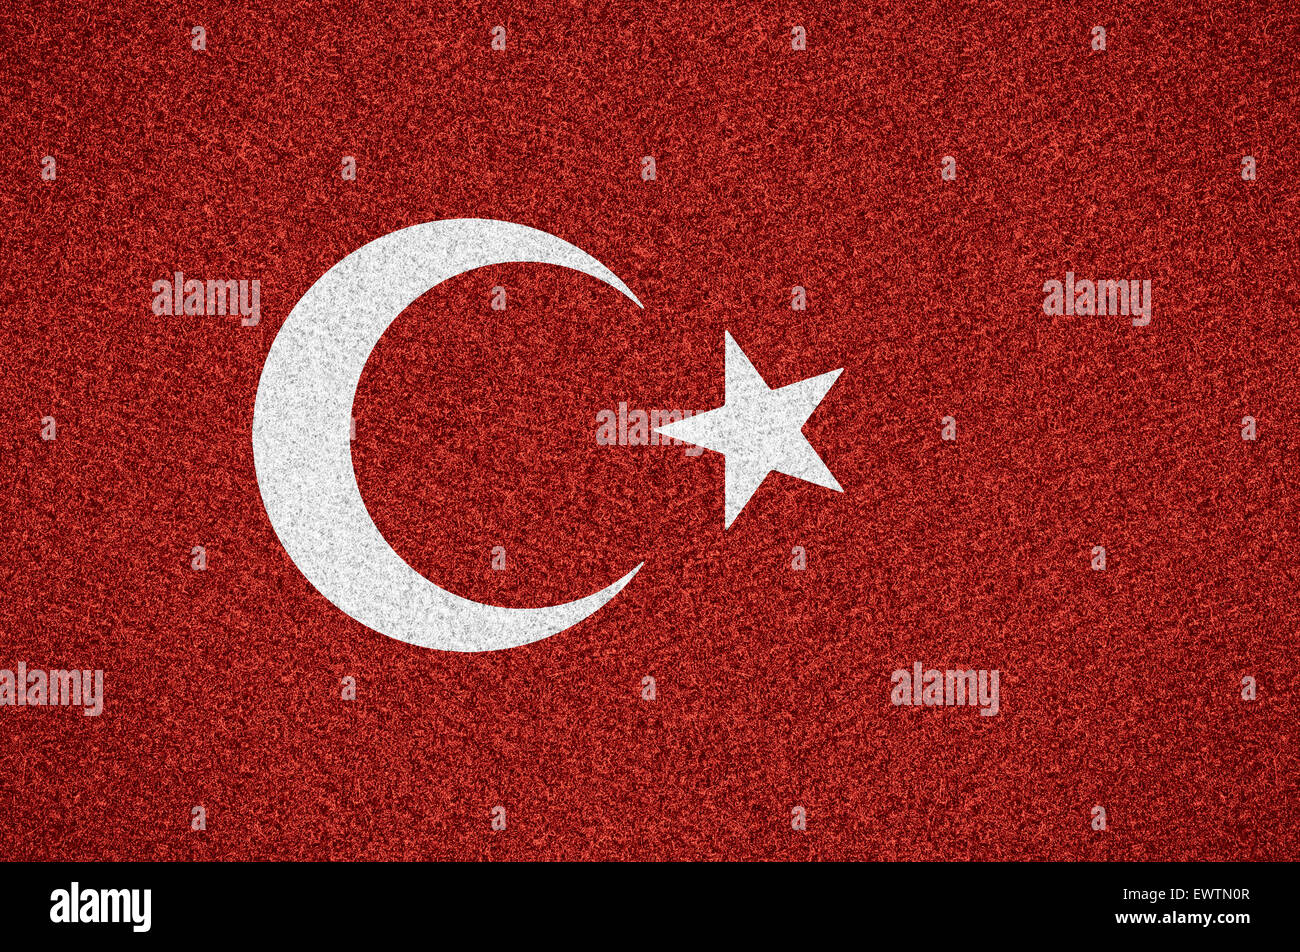 Turkish Symbol Stock Photos Turkish Symbol Stock Images Alamy